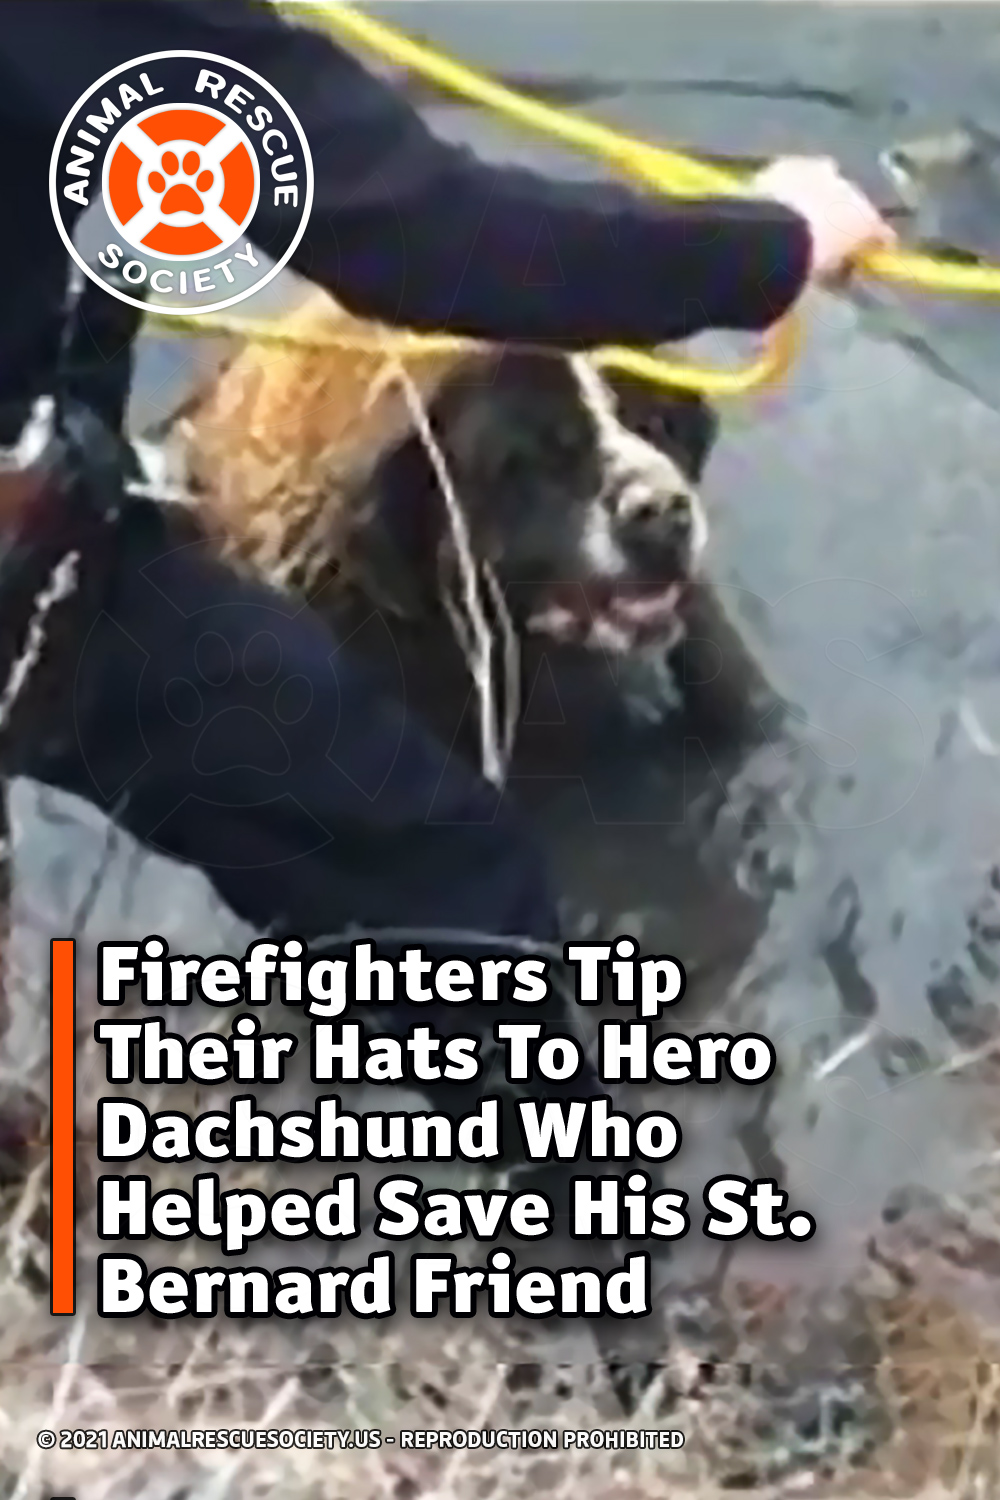 Firefighters Tip Their Hats To Hero Dachshund Who Helped Save His St. Bernard Friend